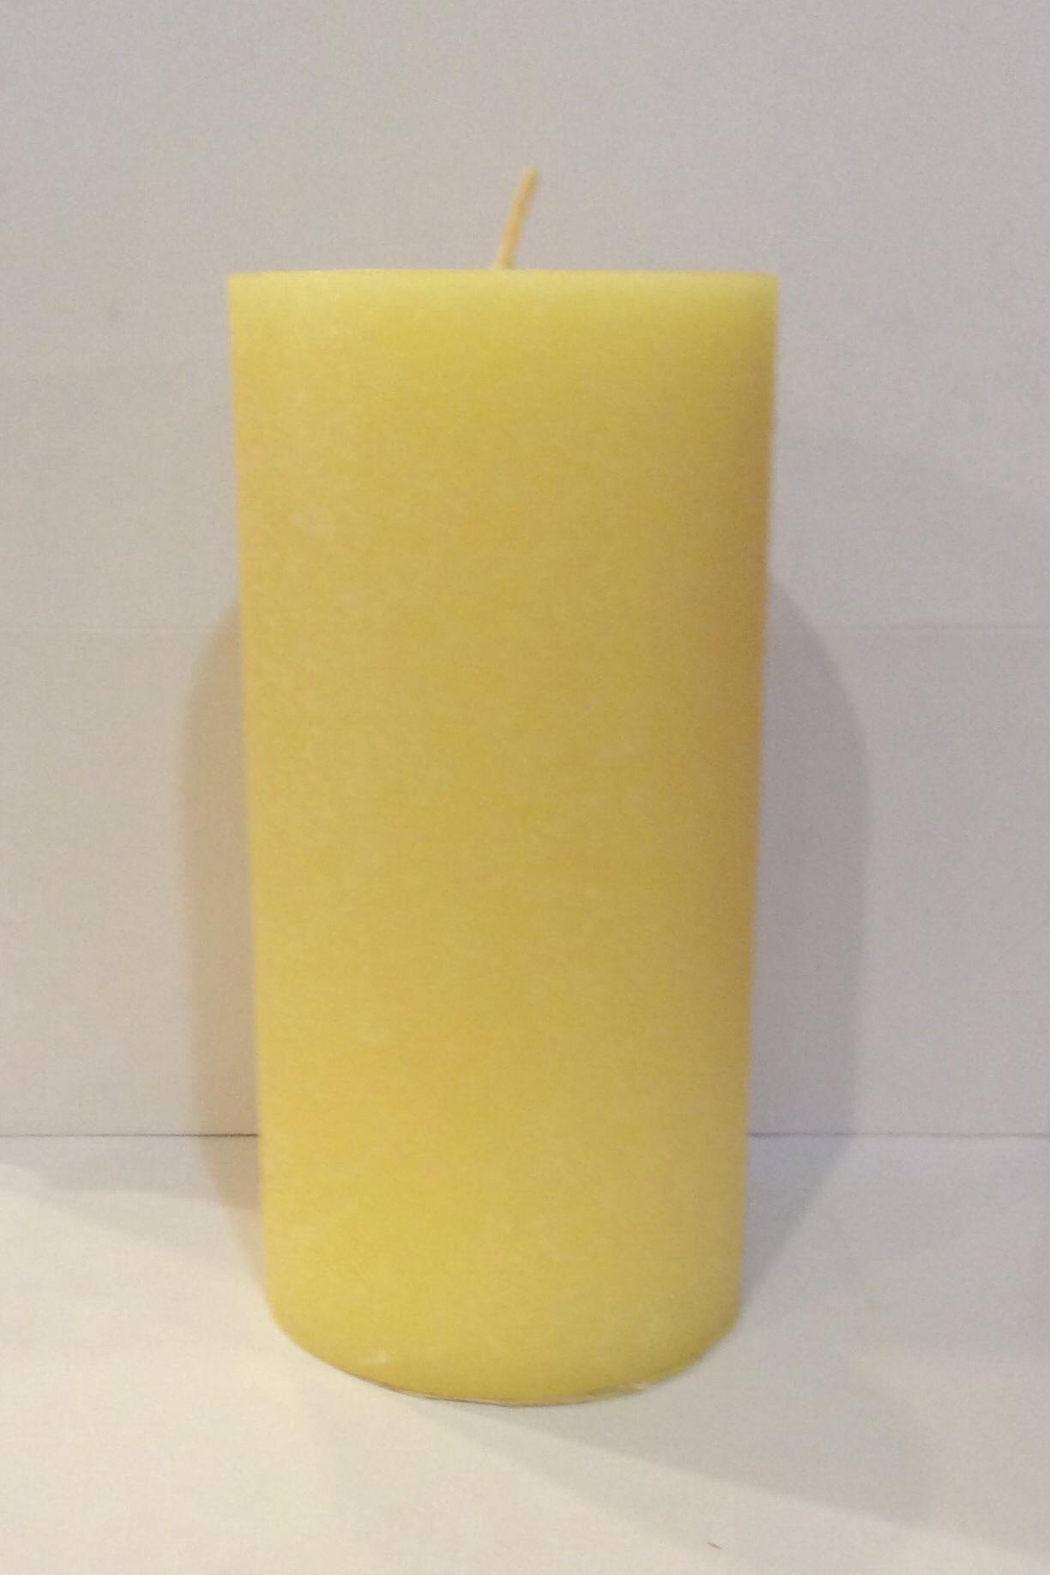 A.I. Root Candle Co. Gardenia 3x6 - Main Image